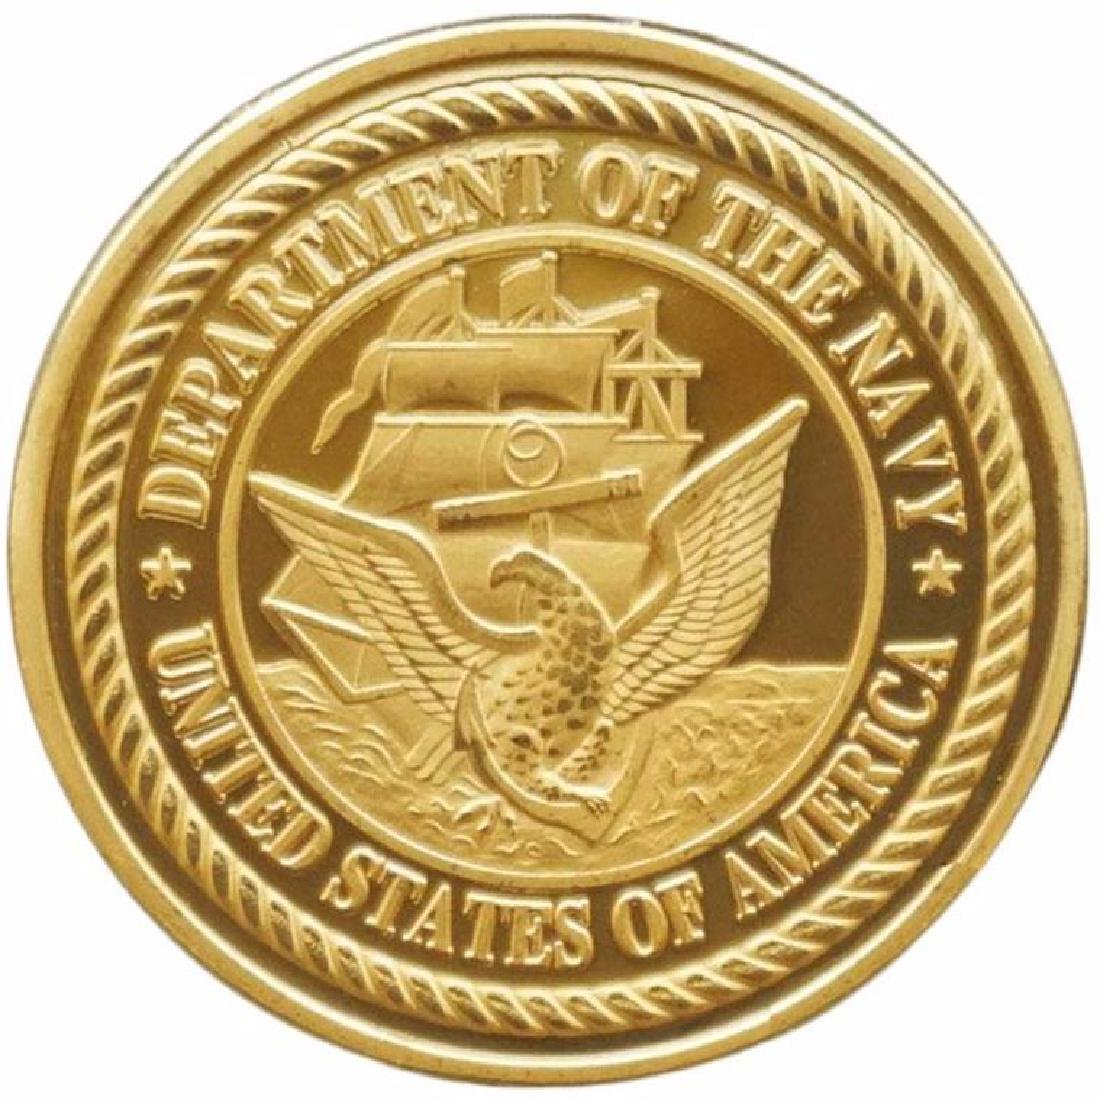 United States Navy Seal Military Challenge Coin - 2